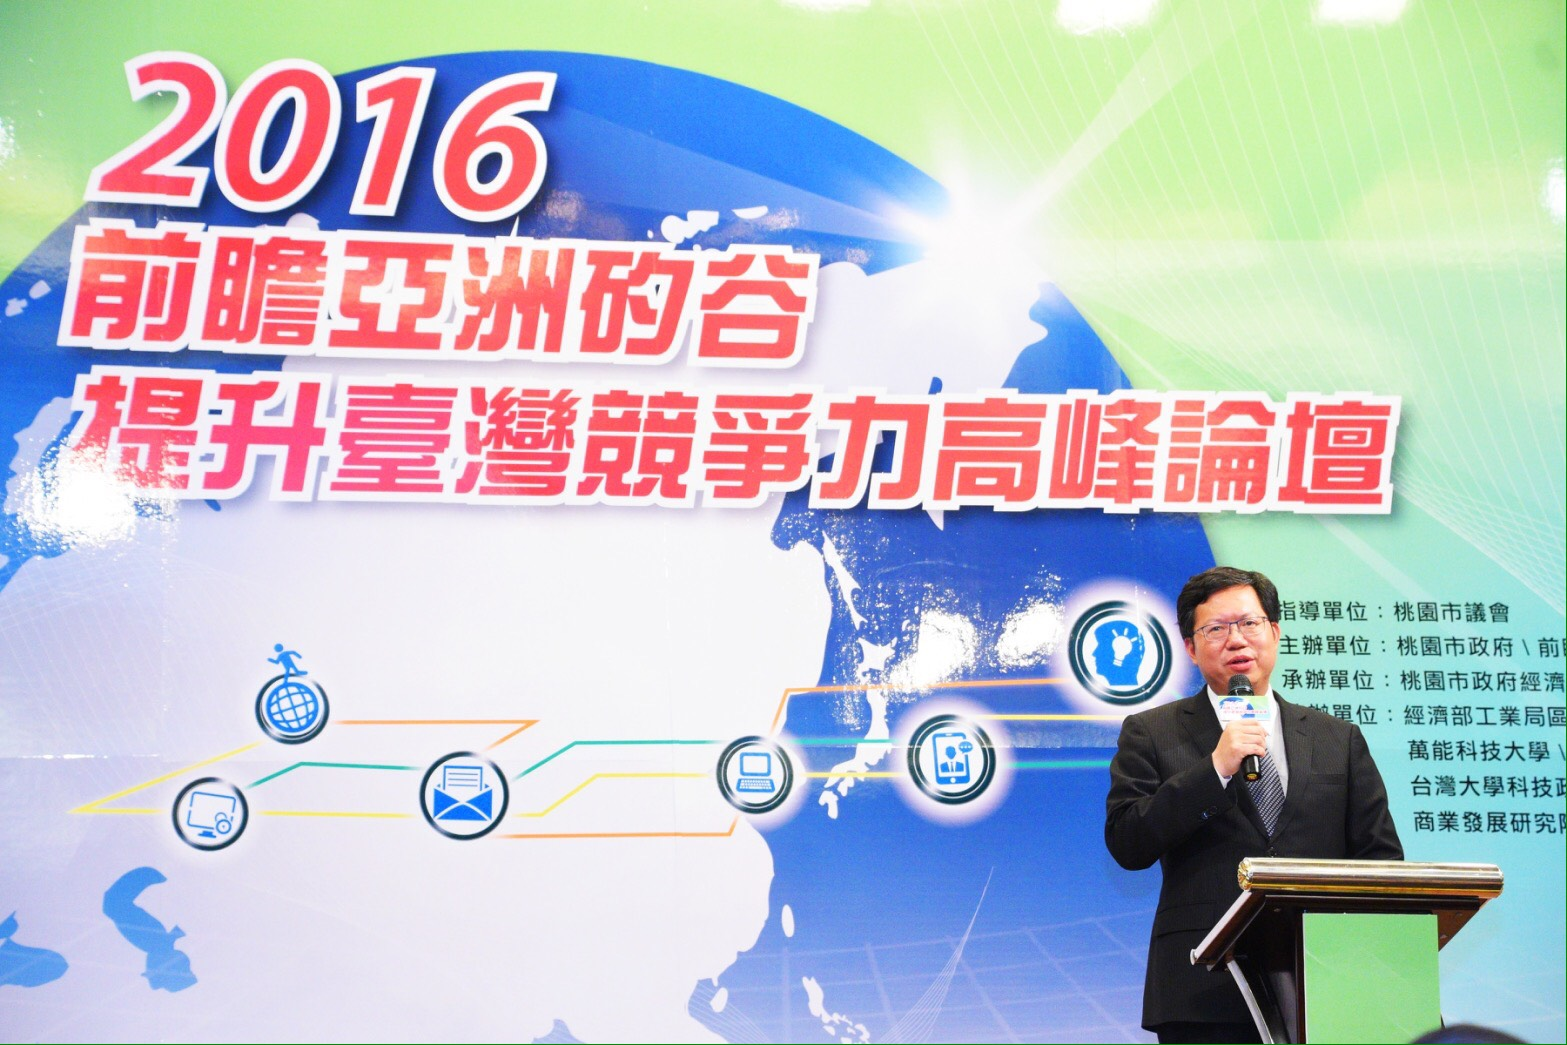 2016 Pioneering Asia Silicon Valley For...